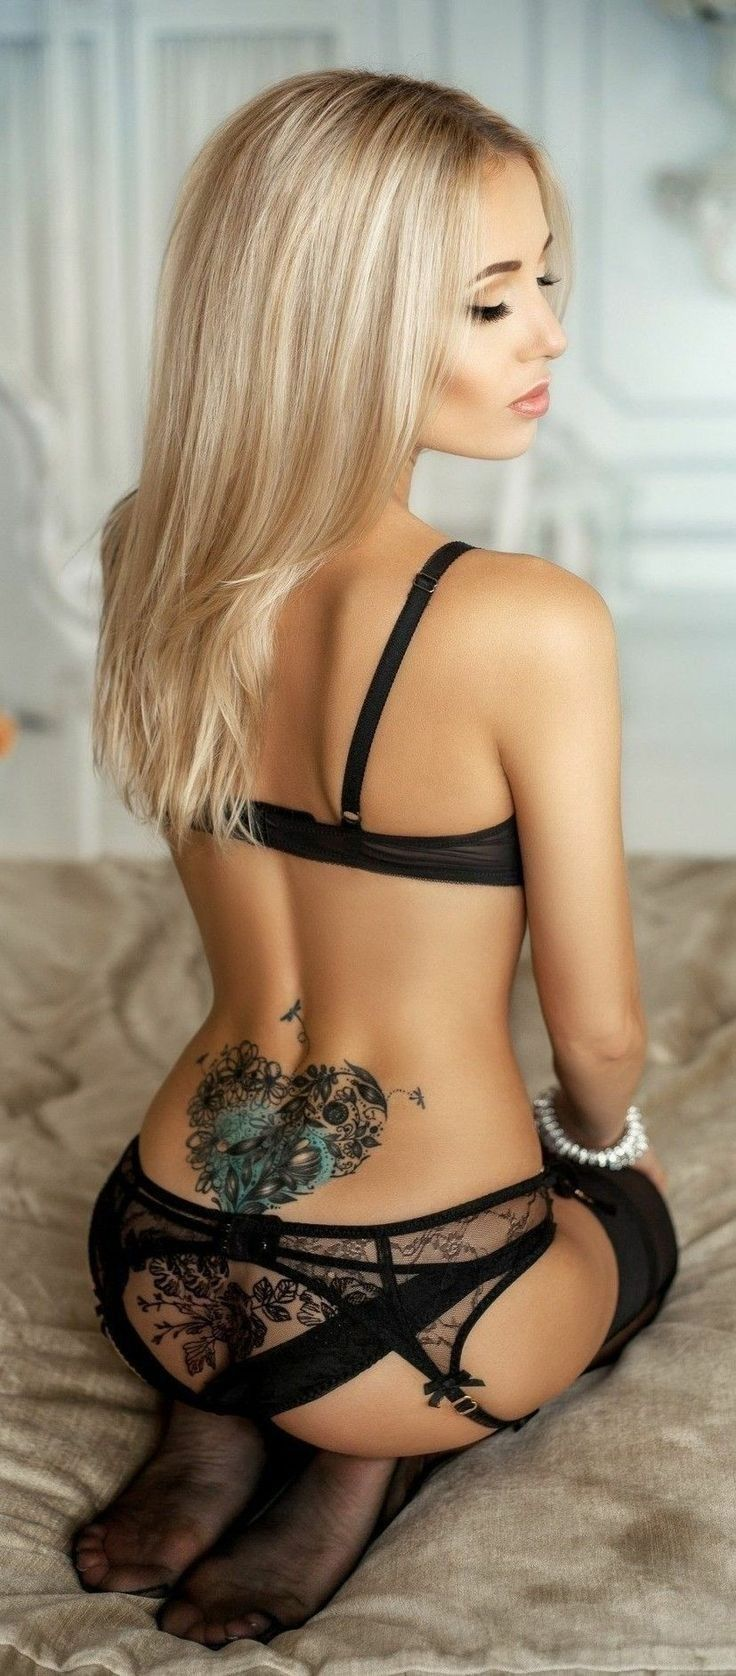 Pin By William Bachman On Blonde Ambition Girl Tattoos